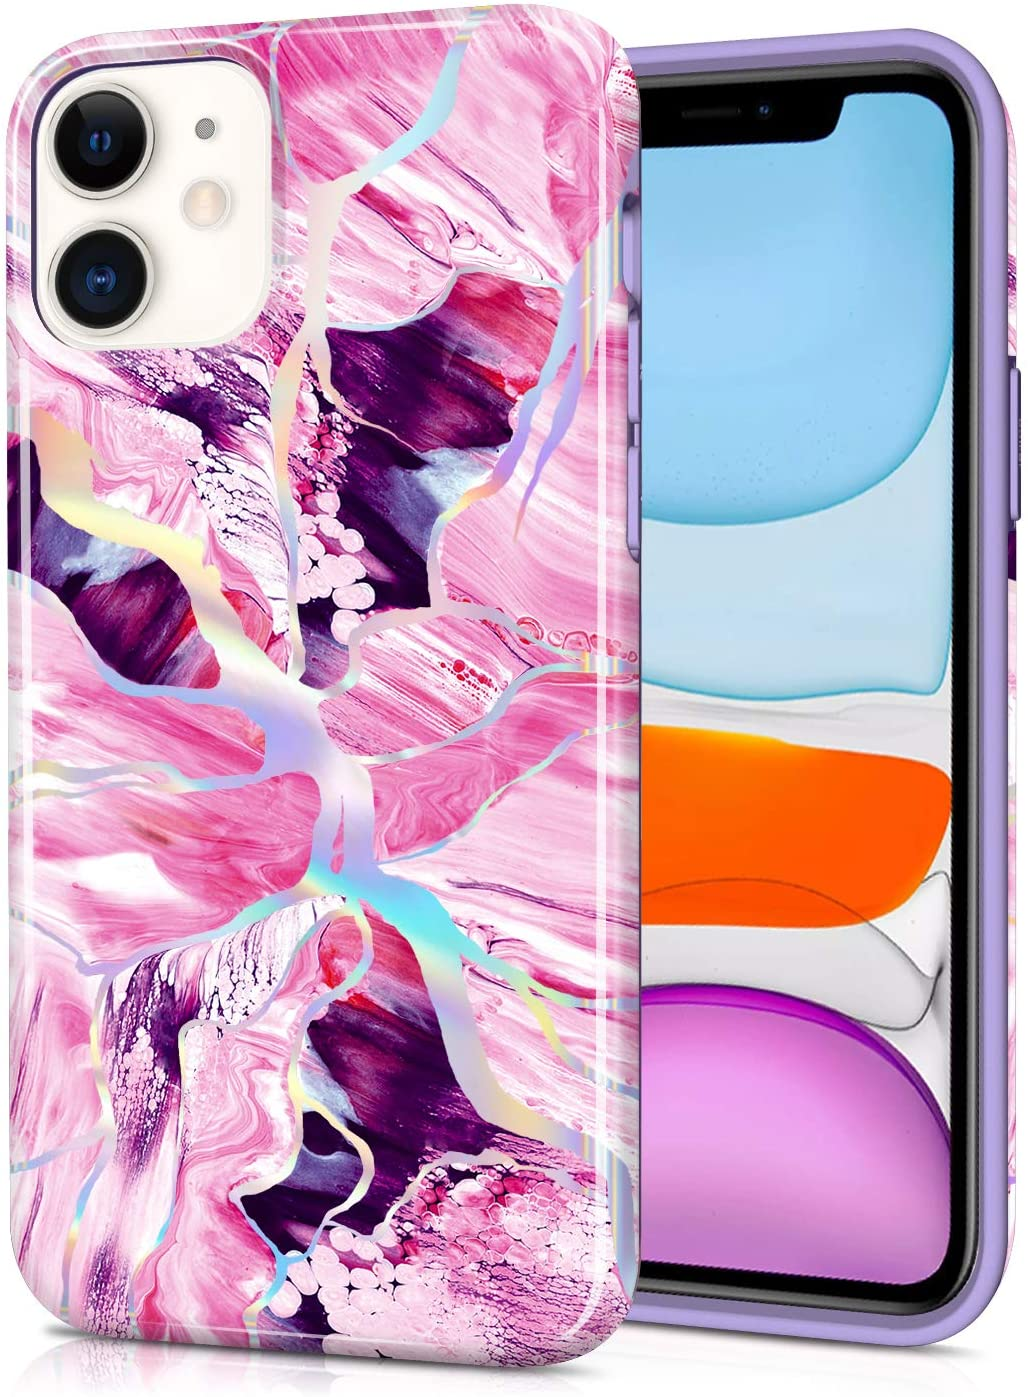 CAOUME Compatible with iPhone 11 Case (2019 Release) Holographic Pink Marble Design Glitter Protective Stylish Cases for Apple Phone(6.1